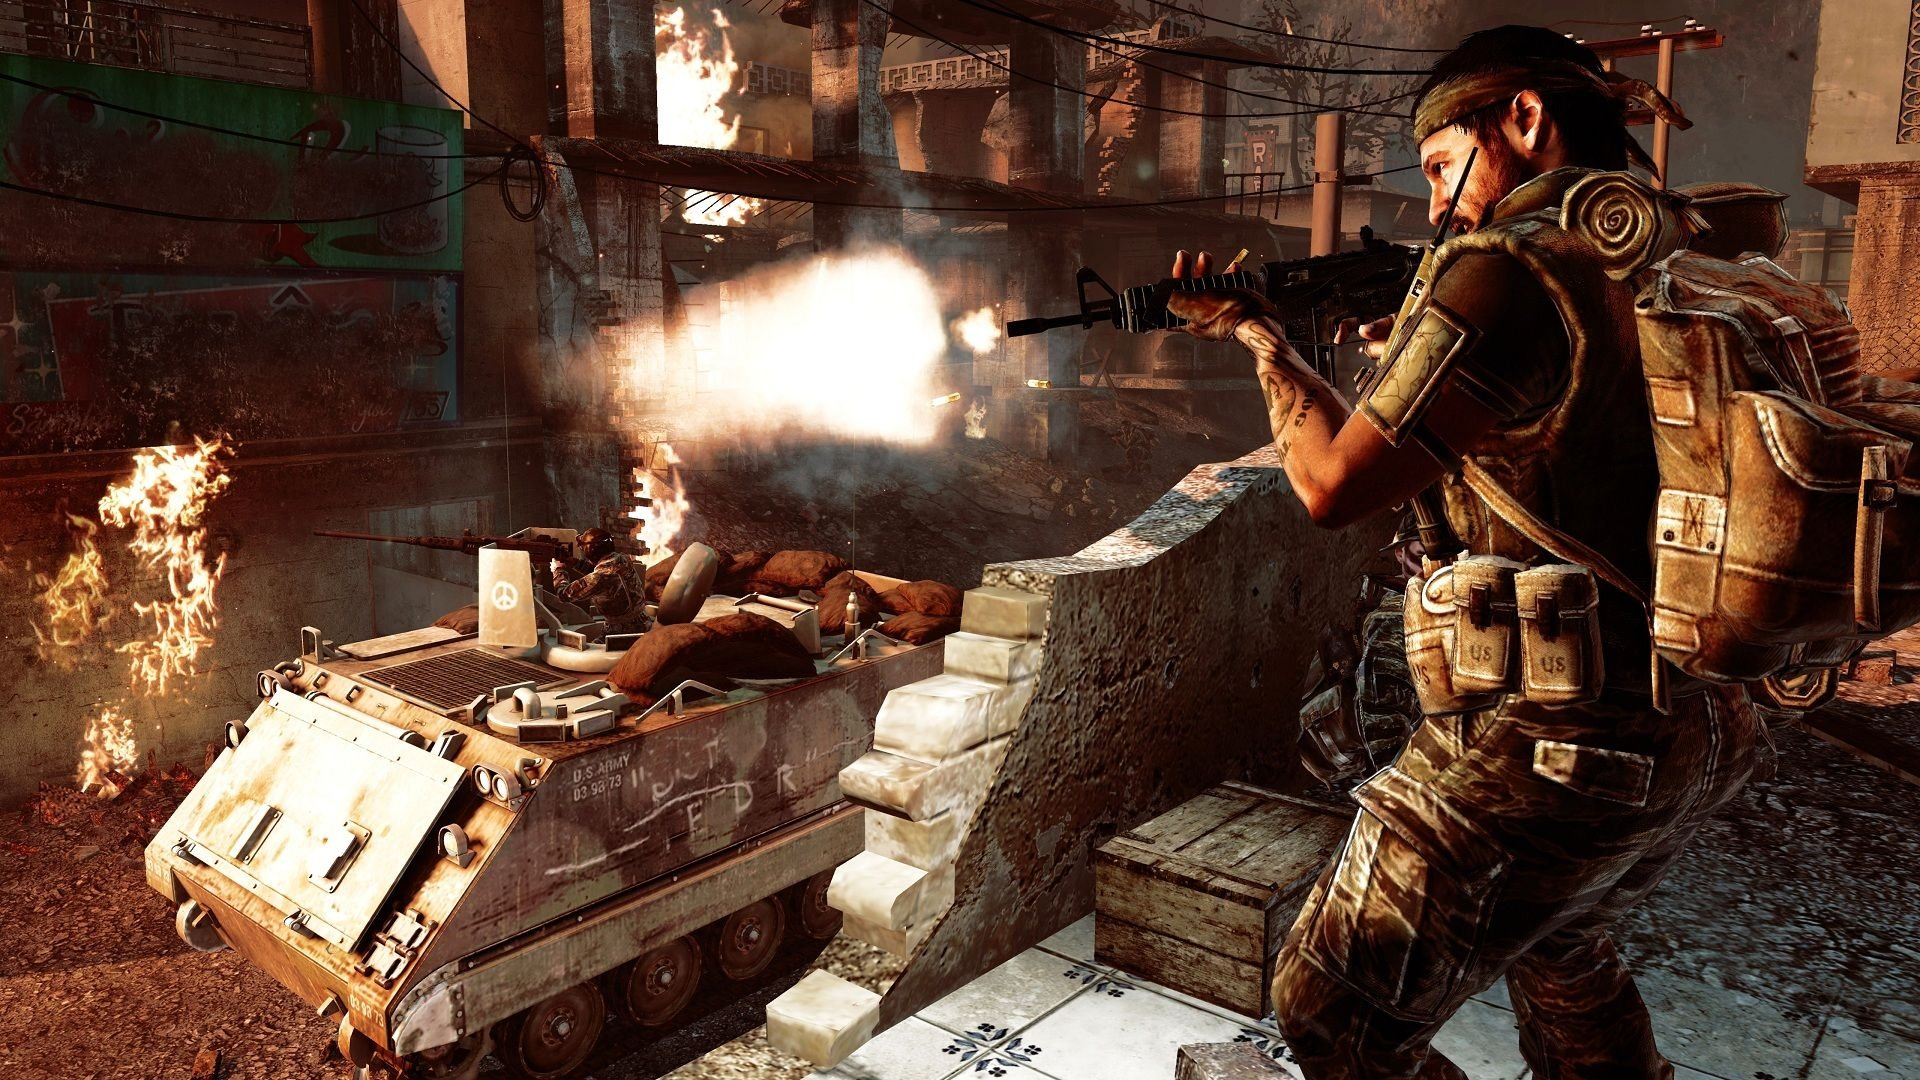 Call of Duty: Black Ops image 8